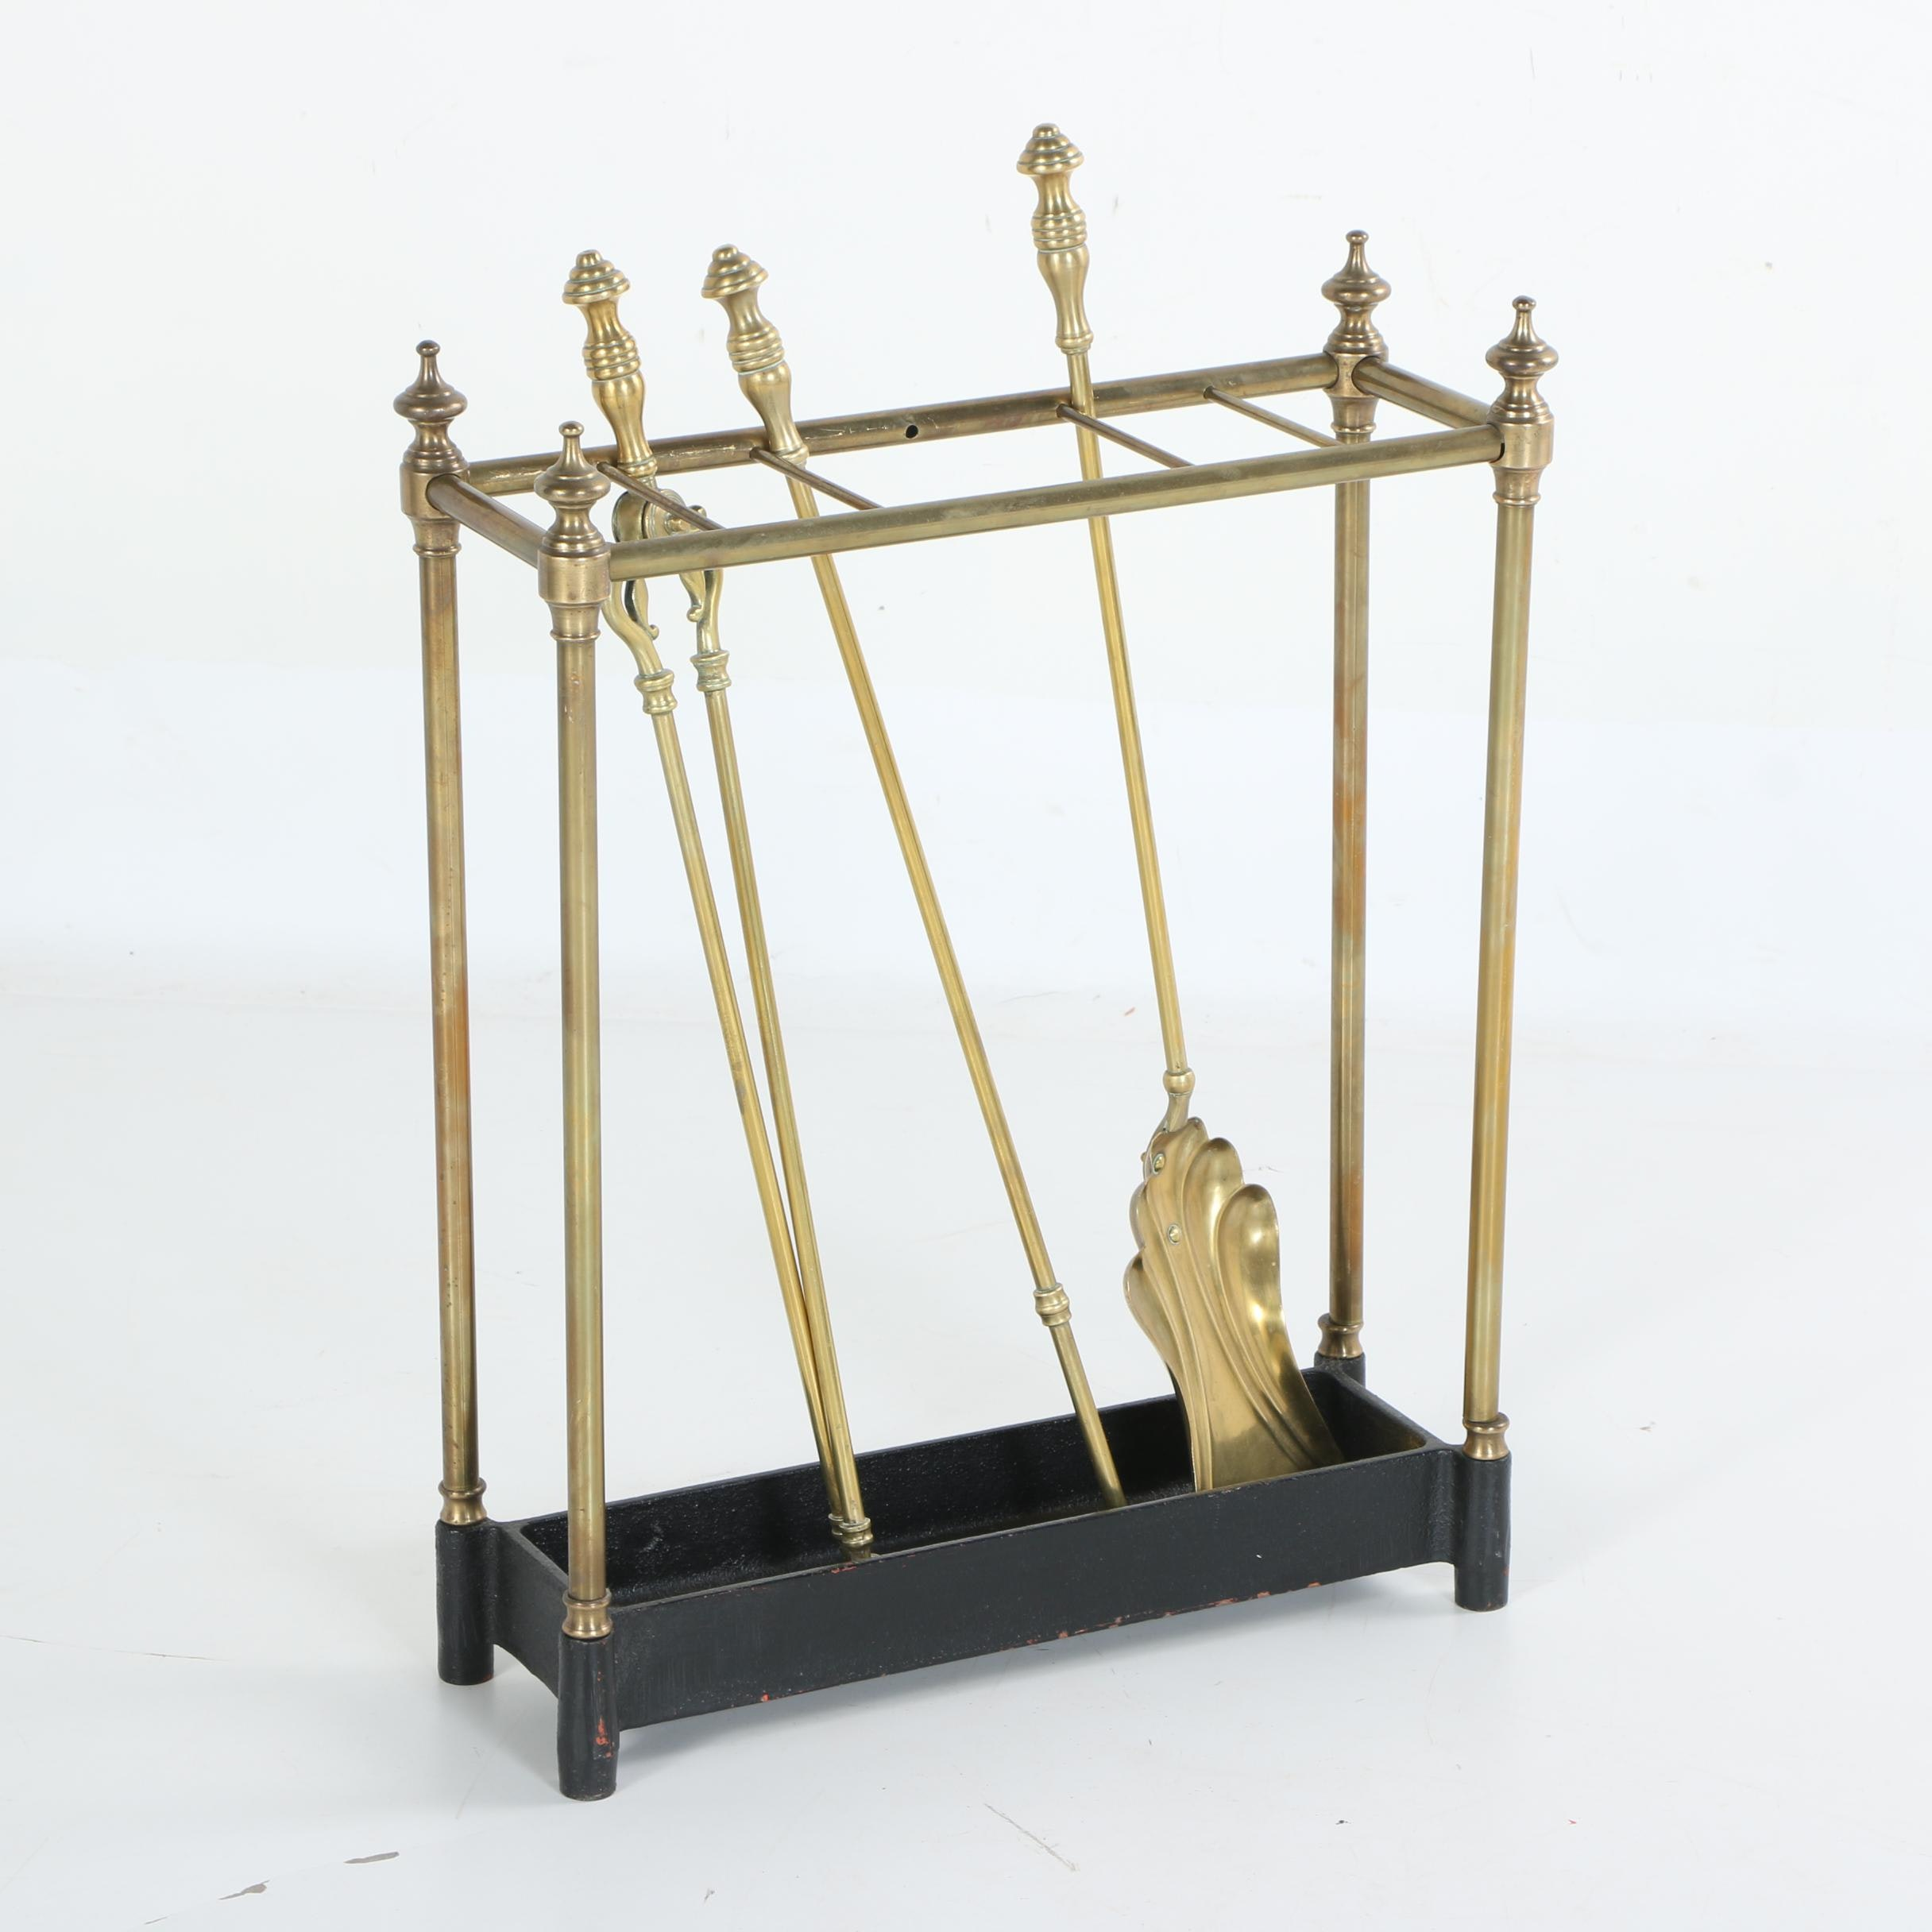 Vintage Brass Fireplace Tool Storage Rack with Tools